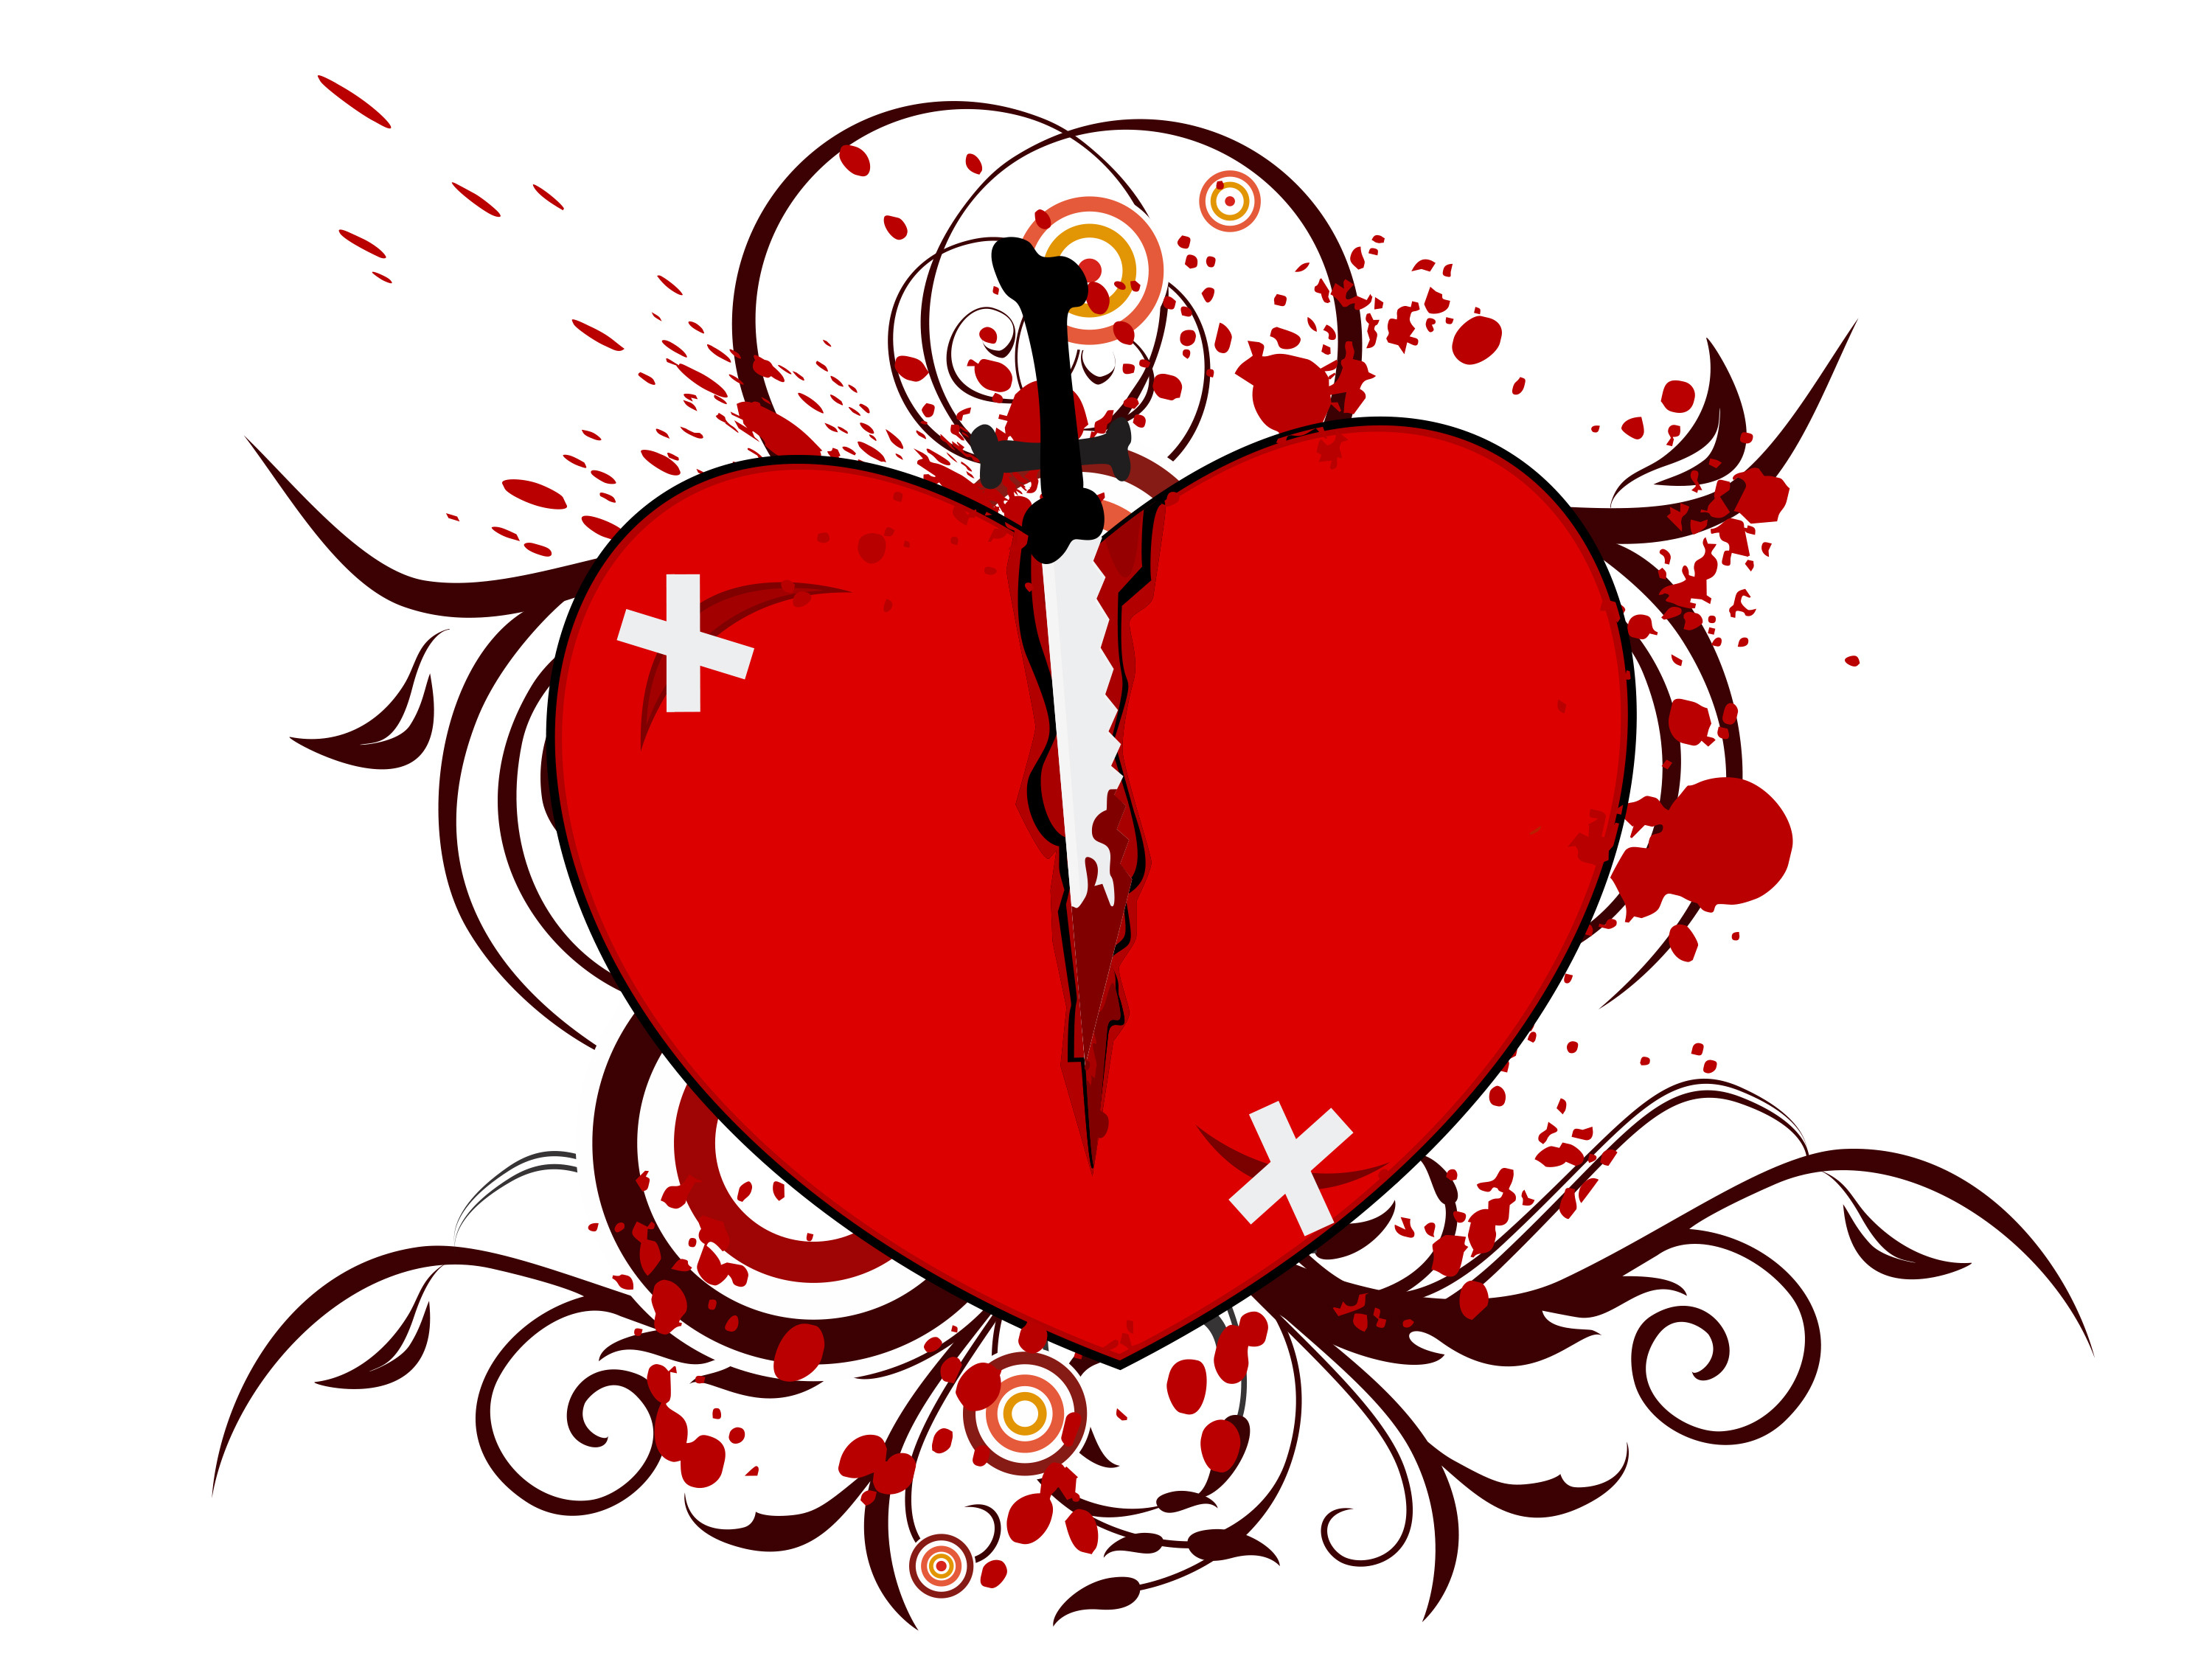 vector-illustration-of-a-broken-heart-shape_G1jGj9ou_L.jpg